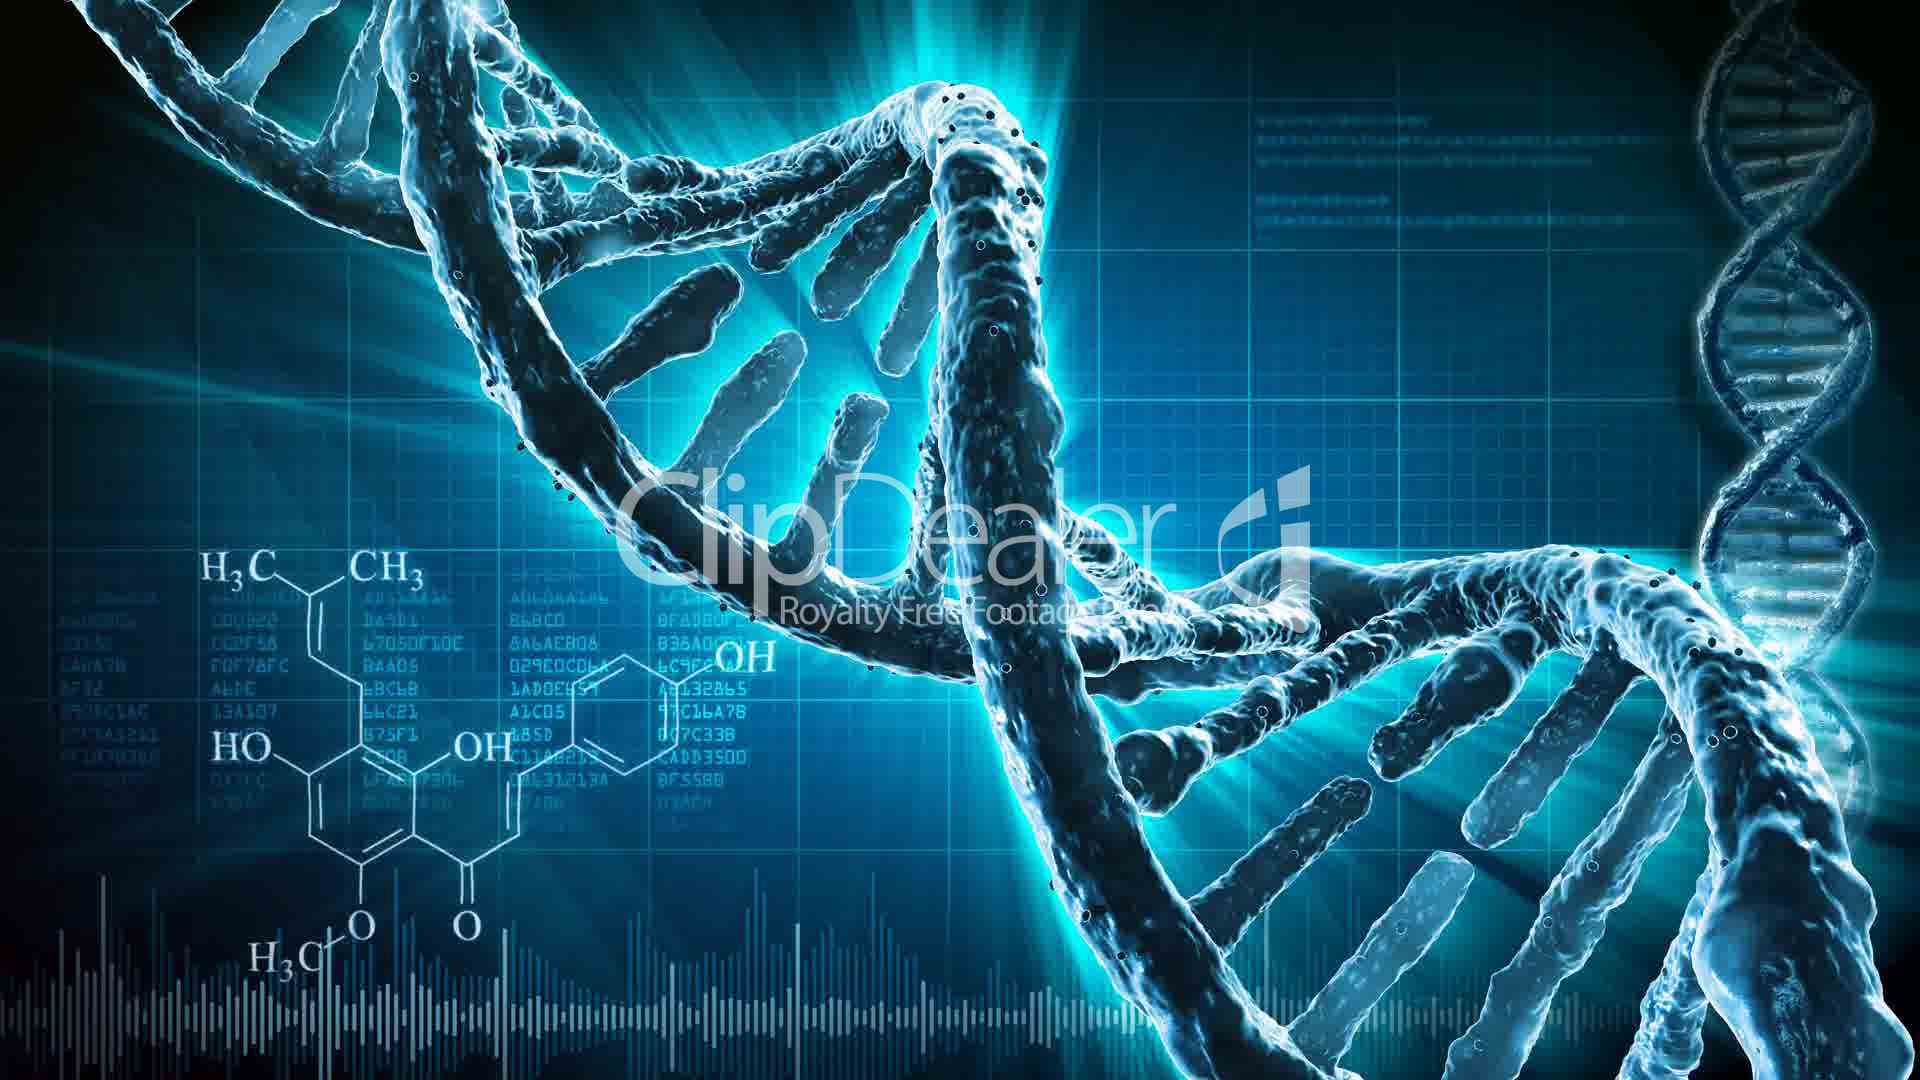 Scientific Dna Wallpapers 2015 Wallpaper Cave